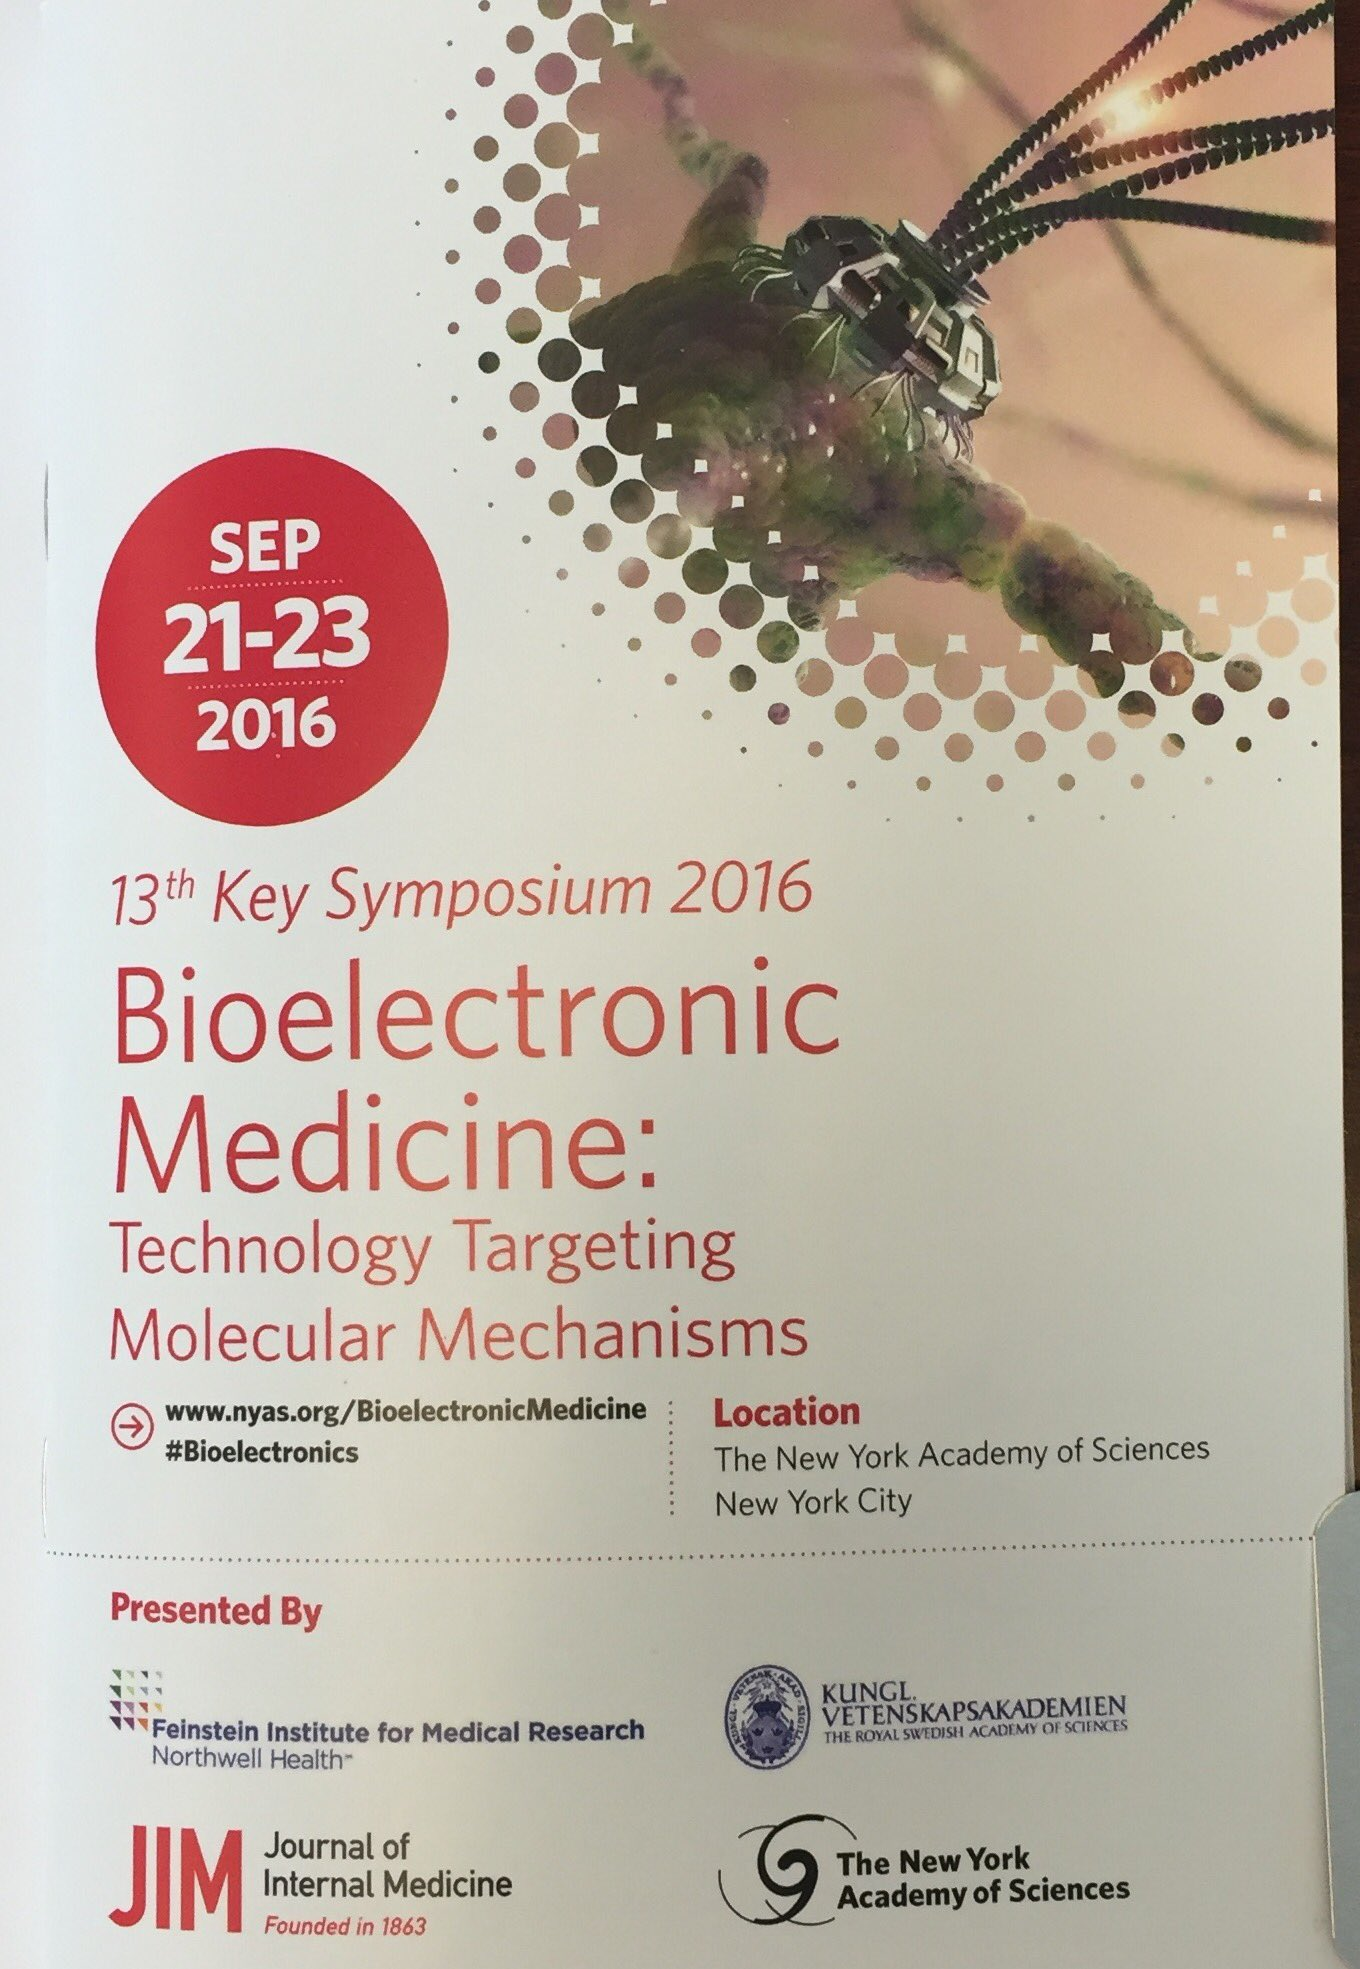 Welcome to #Bioelectronics meeting @NYASciences! https://t.co/VJYIhW3ZWS